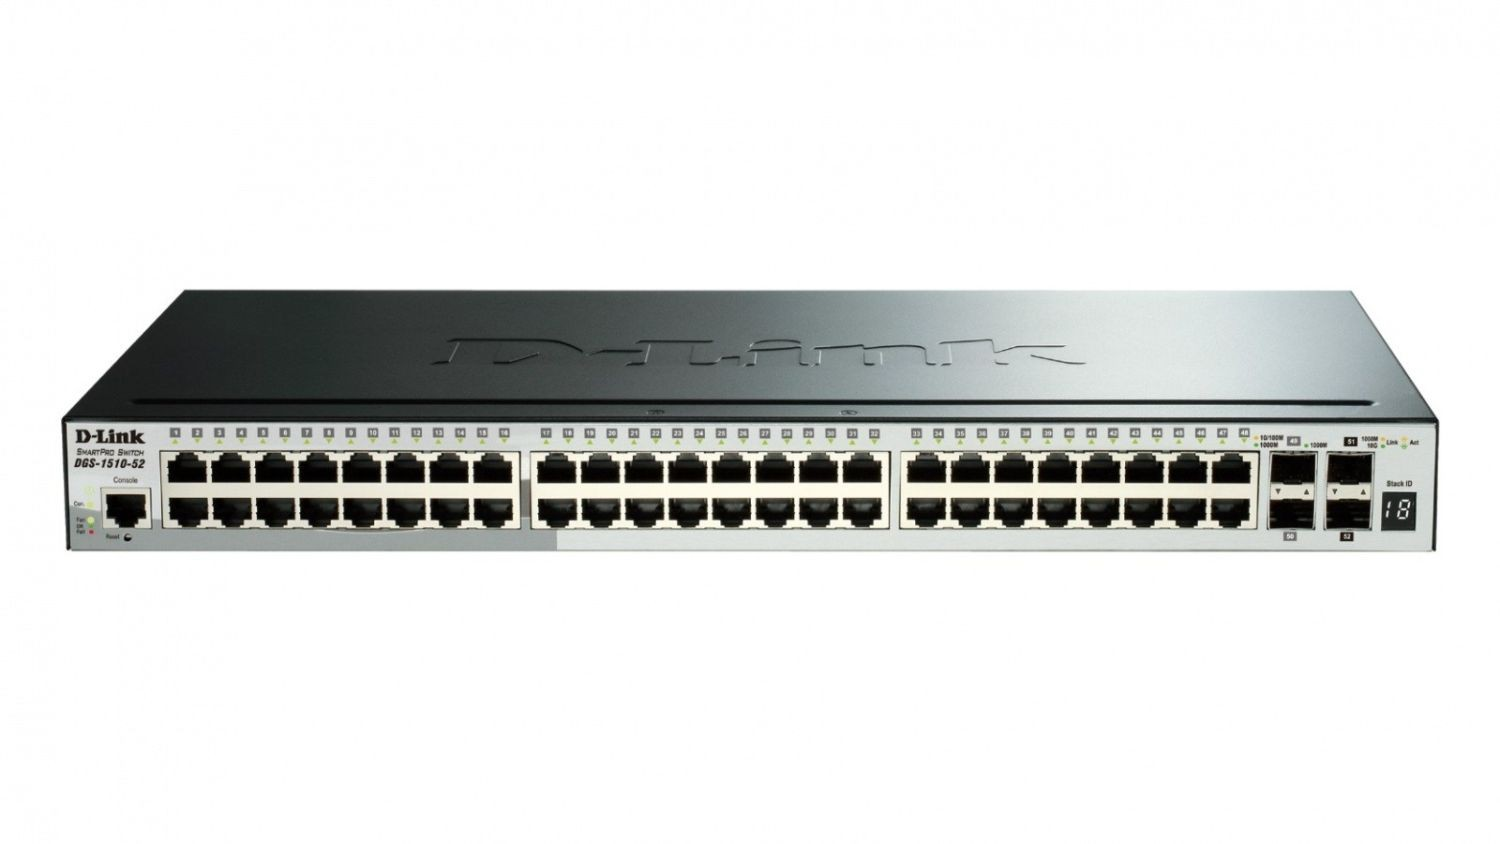 D-Link 52-Port Gigabit Stackable SmartPro Switch 2x SFP and 2x 10G SFP+ ports